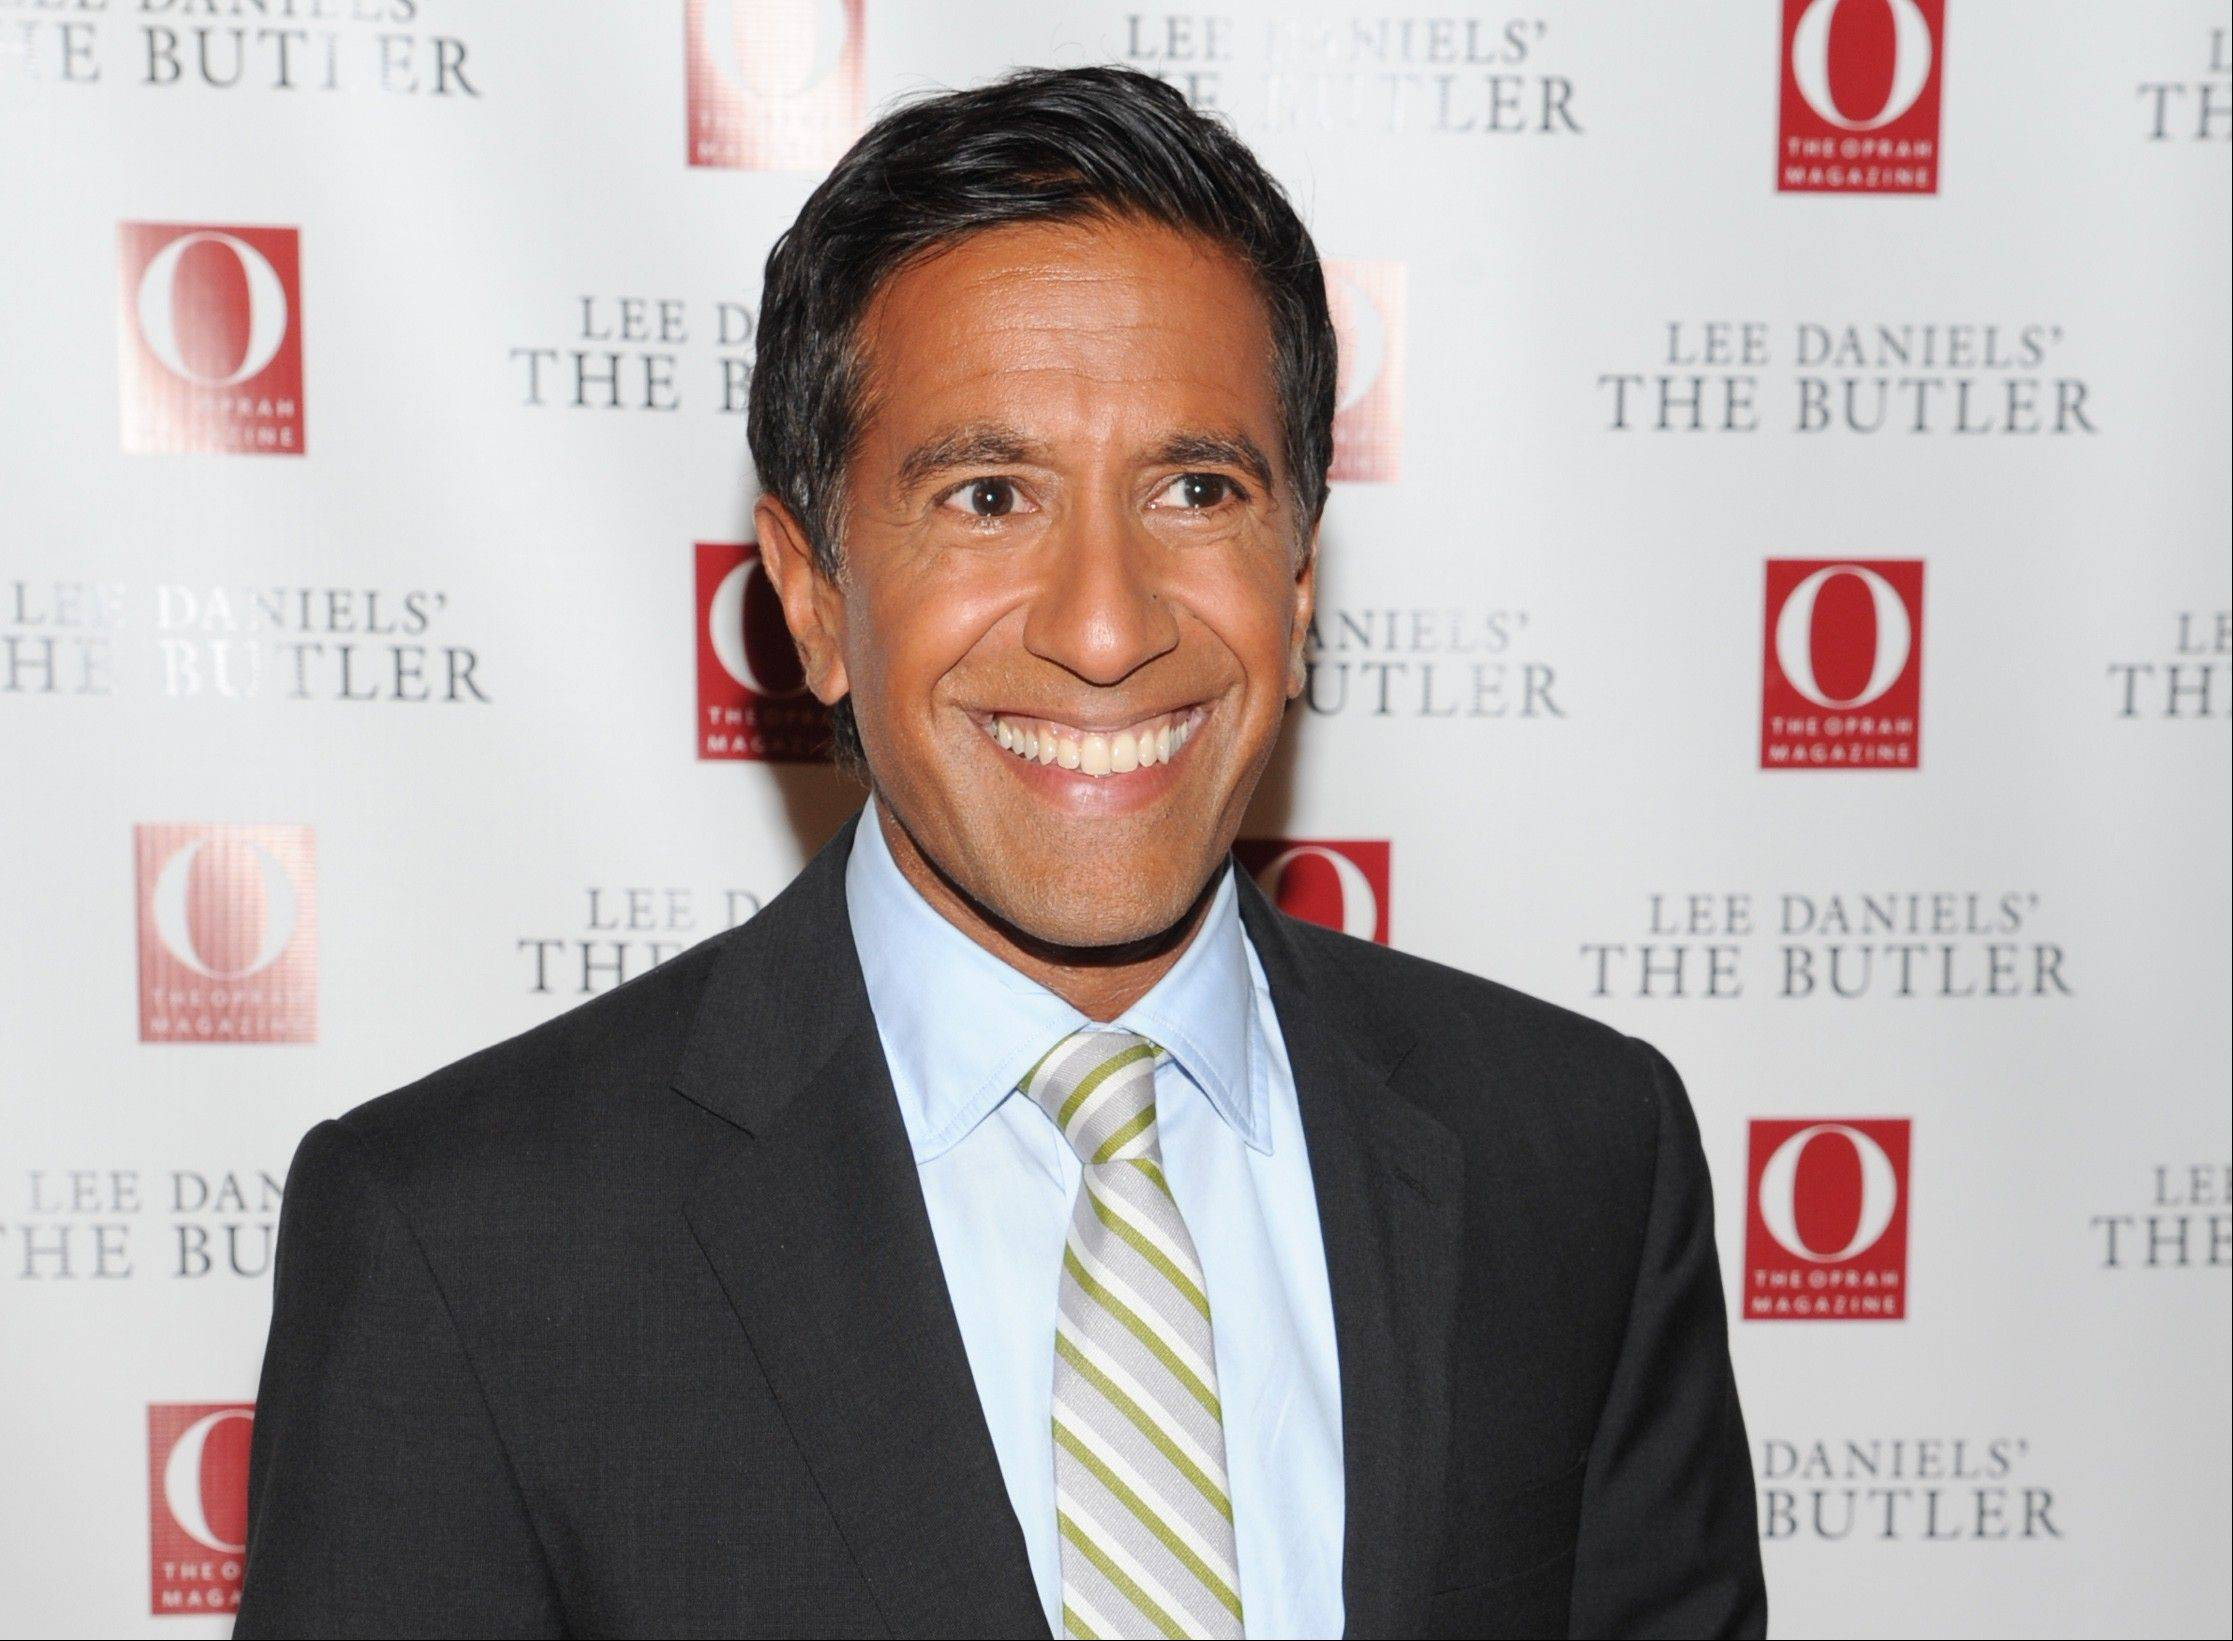 Dr. Sanjay Gupta says he spoke too soon in opposing the medical use of marijuana in the past, and that he now believes the drug can have very real benefits for people with specific health problems. Agostini/Invision/AP, File)